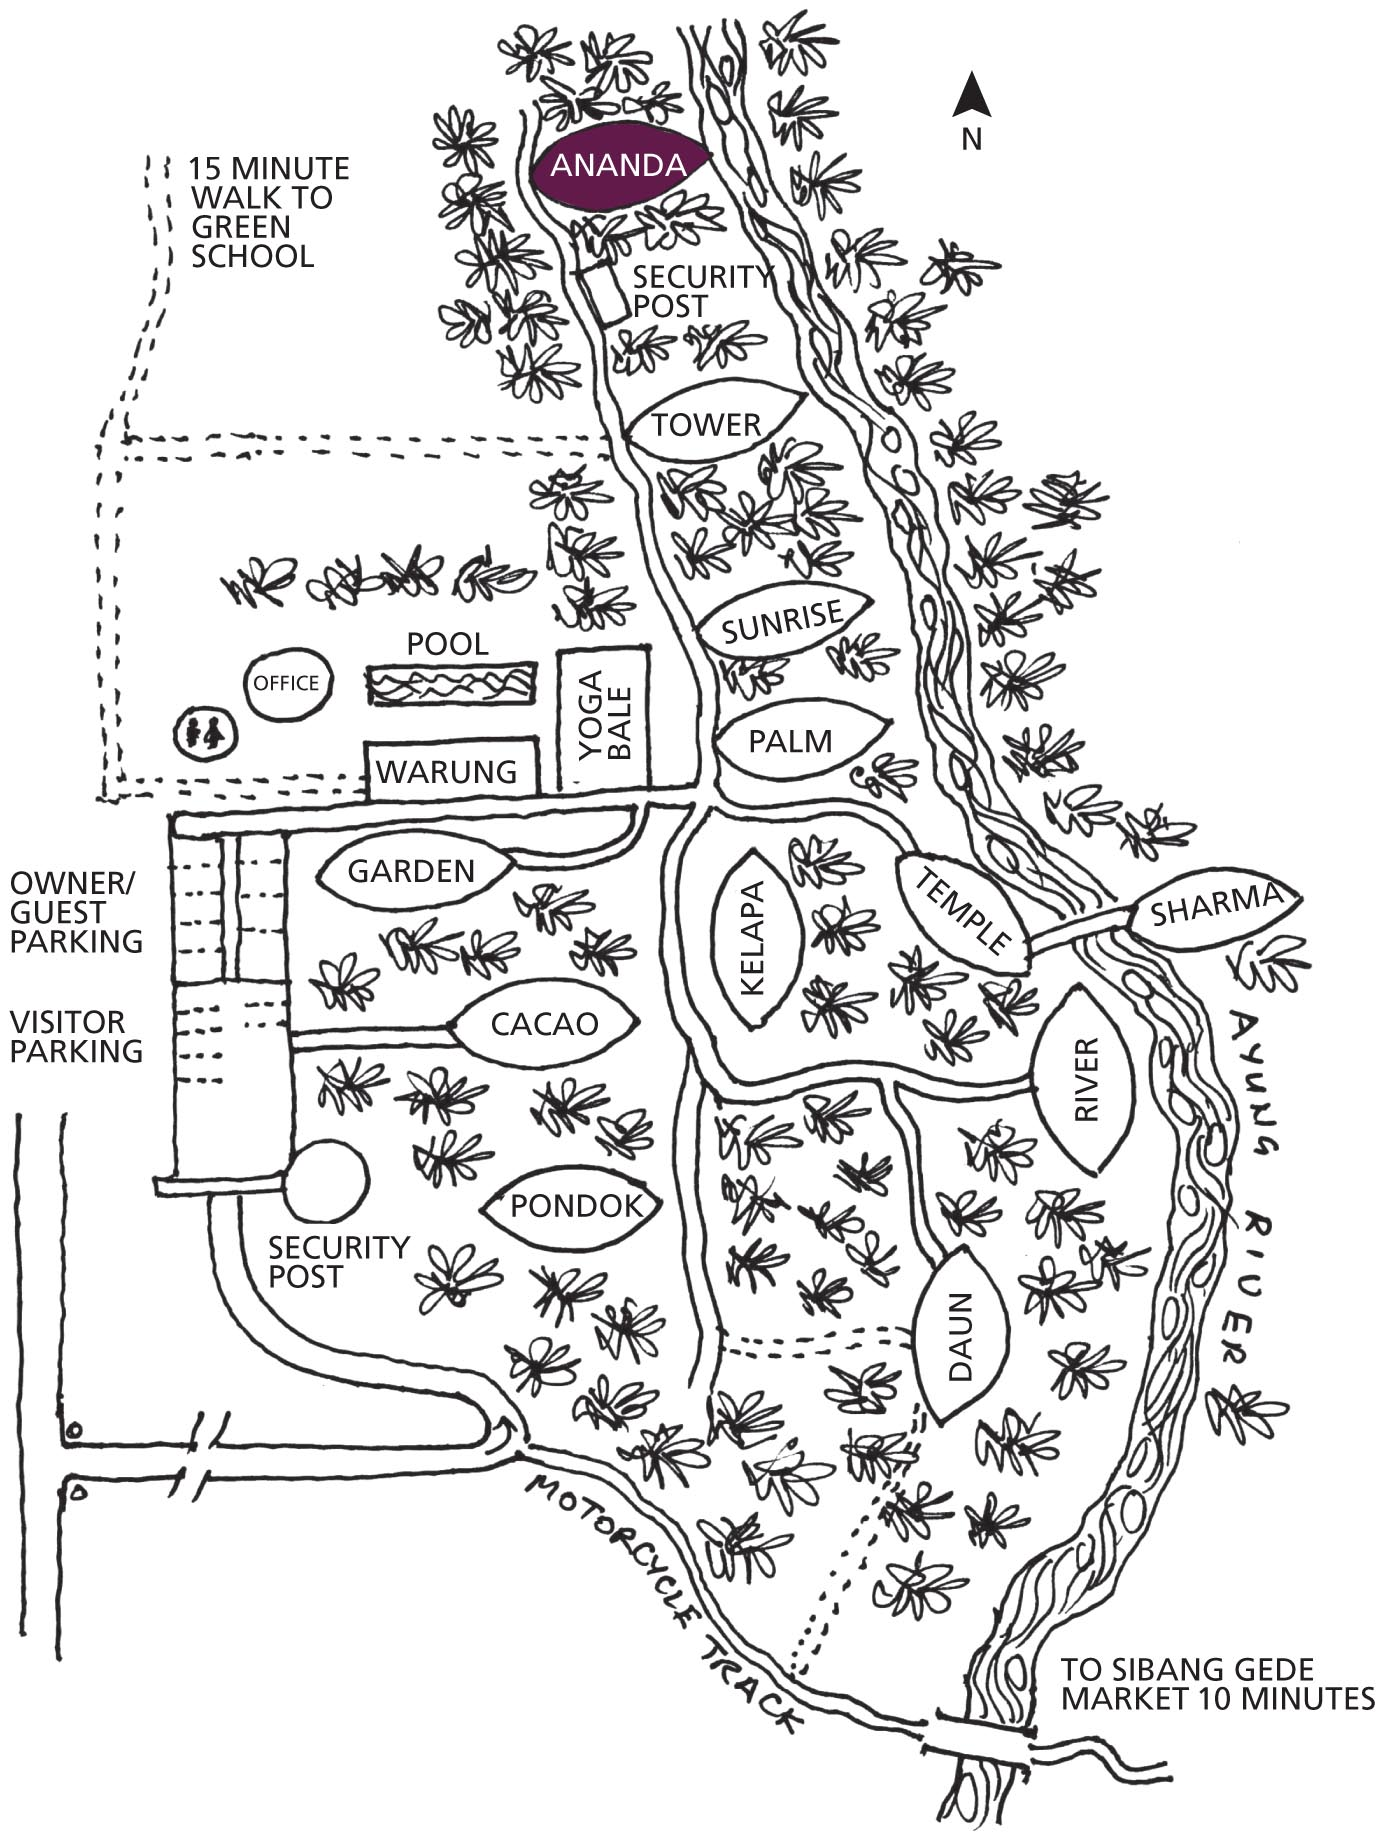 Green village map